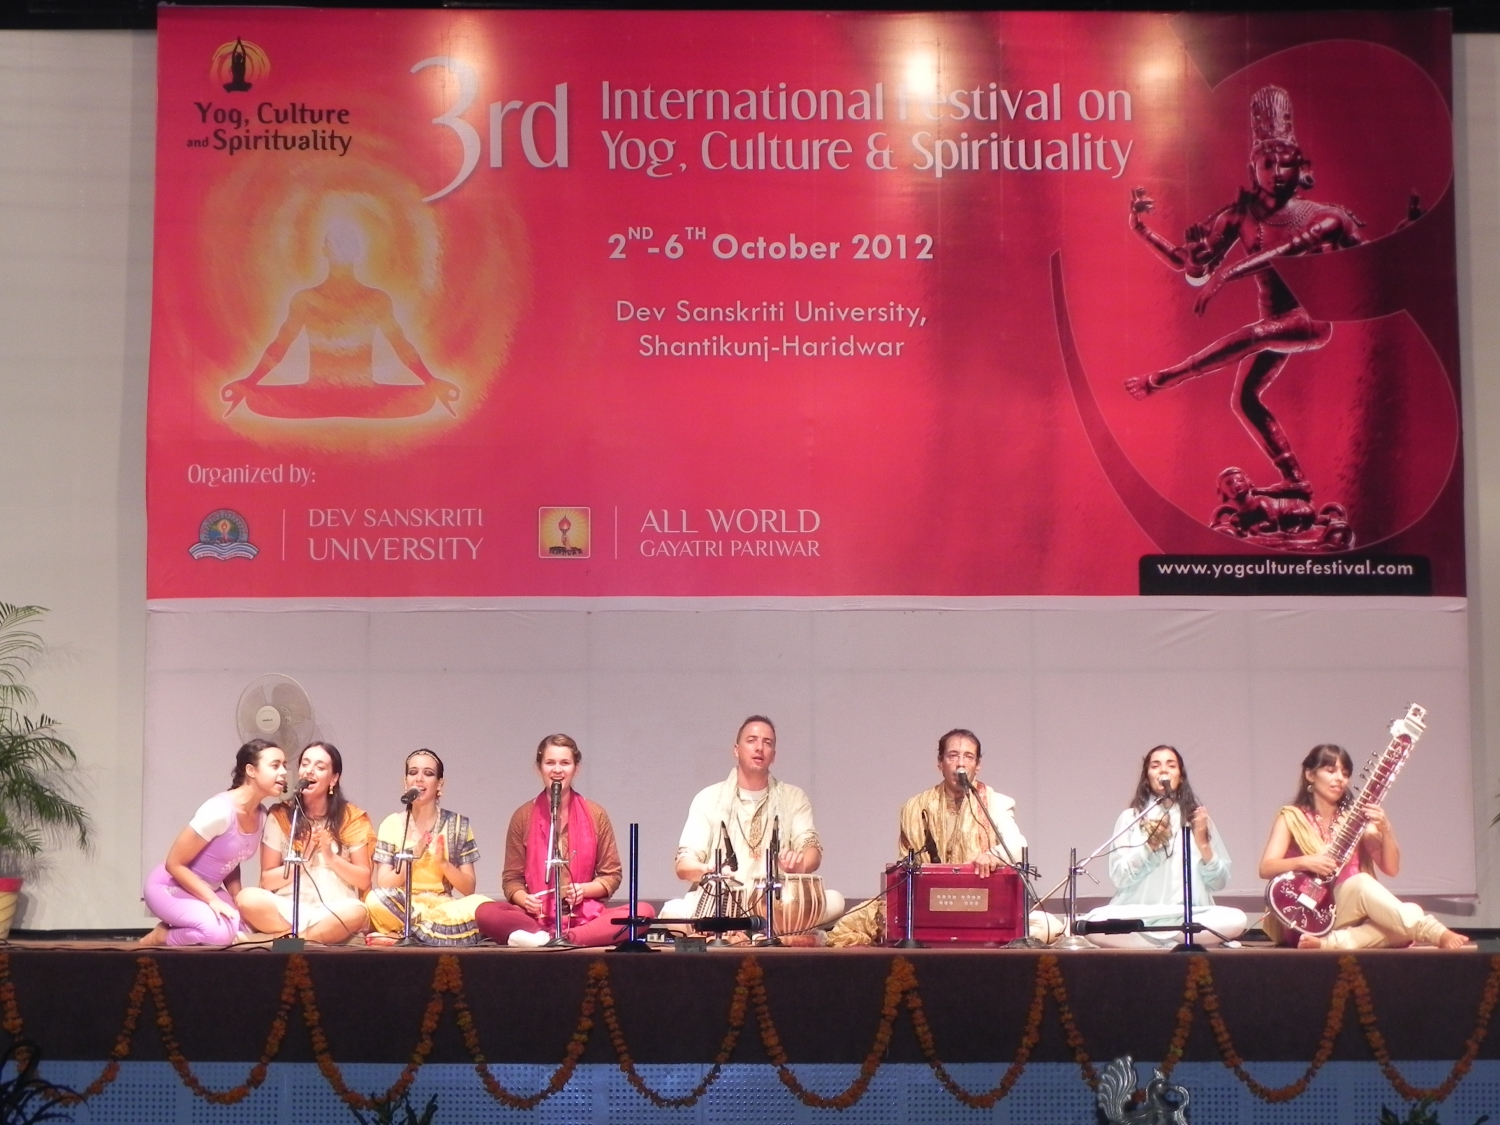 3rd International Festival on Yoga, Culture and Spirituality - Shāntikunj Āshrama, Haridvar, Inde - 2012, octobre, 2 à 6